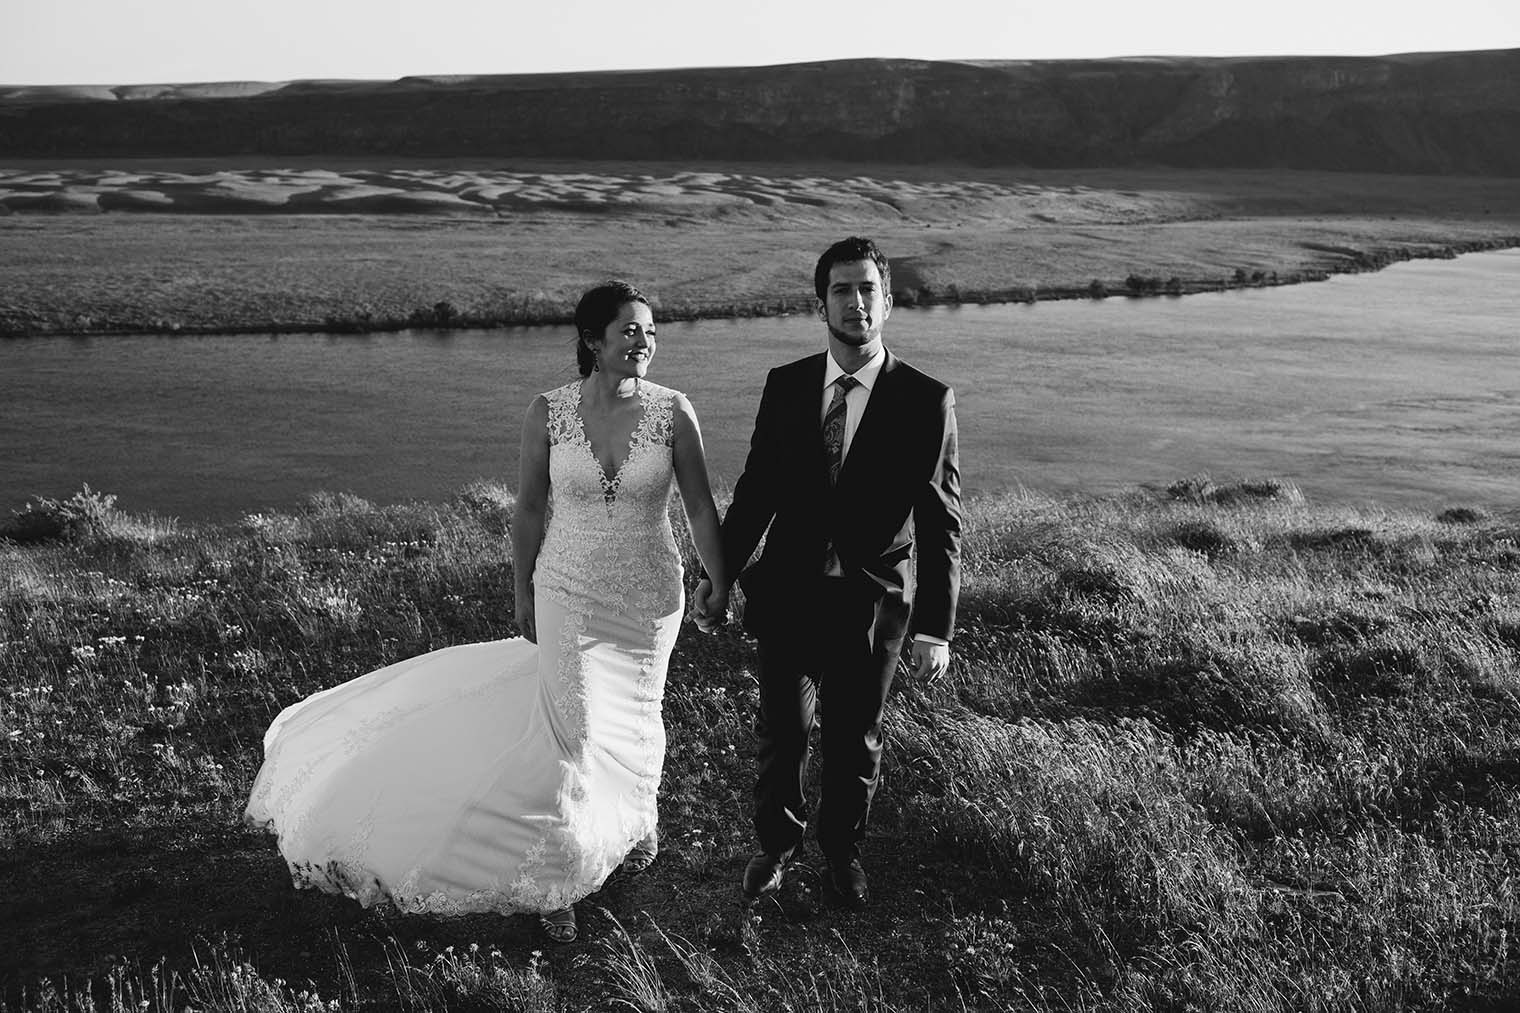 Wedding Photographer located in Wenatchee WA